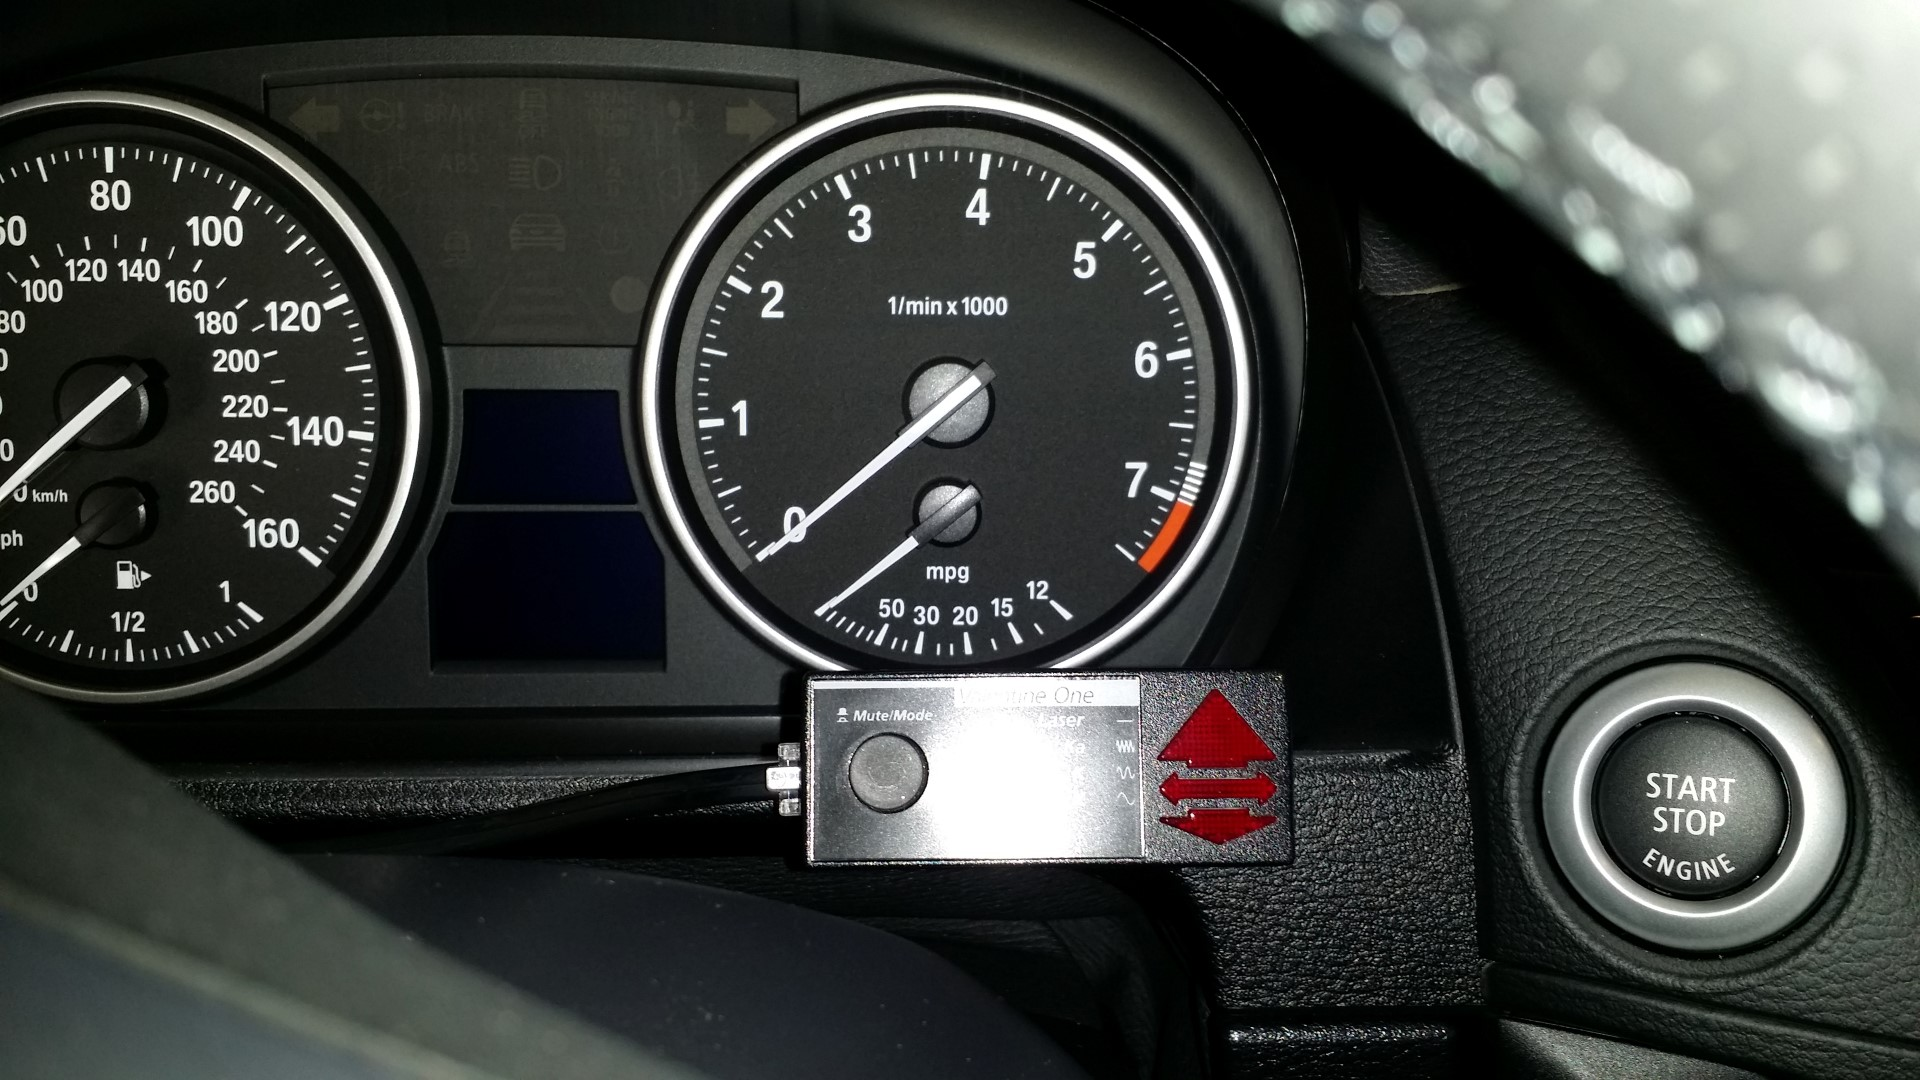 Good Switched 12v Circuit In The Fuse Panel For Radar Detectors Gps 2014 Bmw M6 Box Molding Or Weather Stripping Around Door Frame Until It Exits Right Under Glove And Into Through A Gap Trim Panels